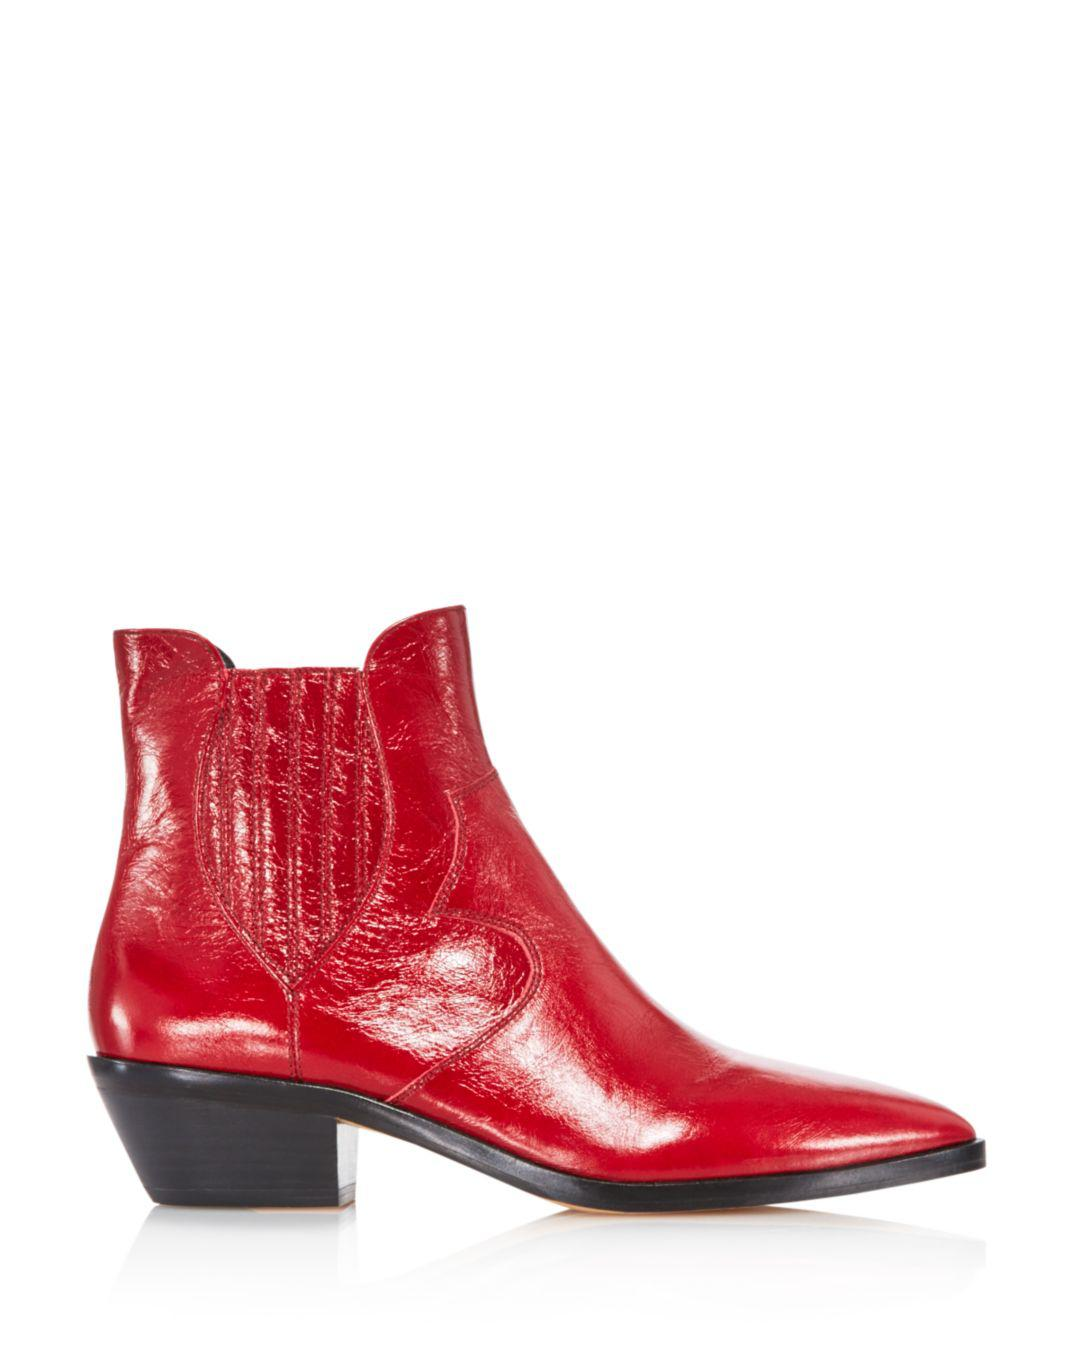 8c4a5db7410 Lyst - Rebecca Minkoff Women s Kaidienne Pointed Toe Leather Low-heel  Booties in Red